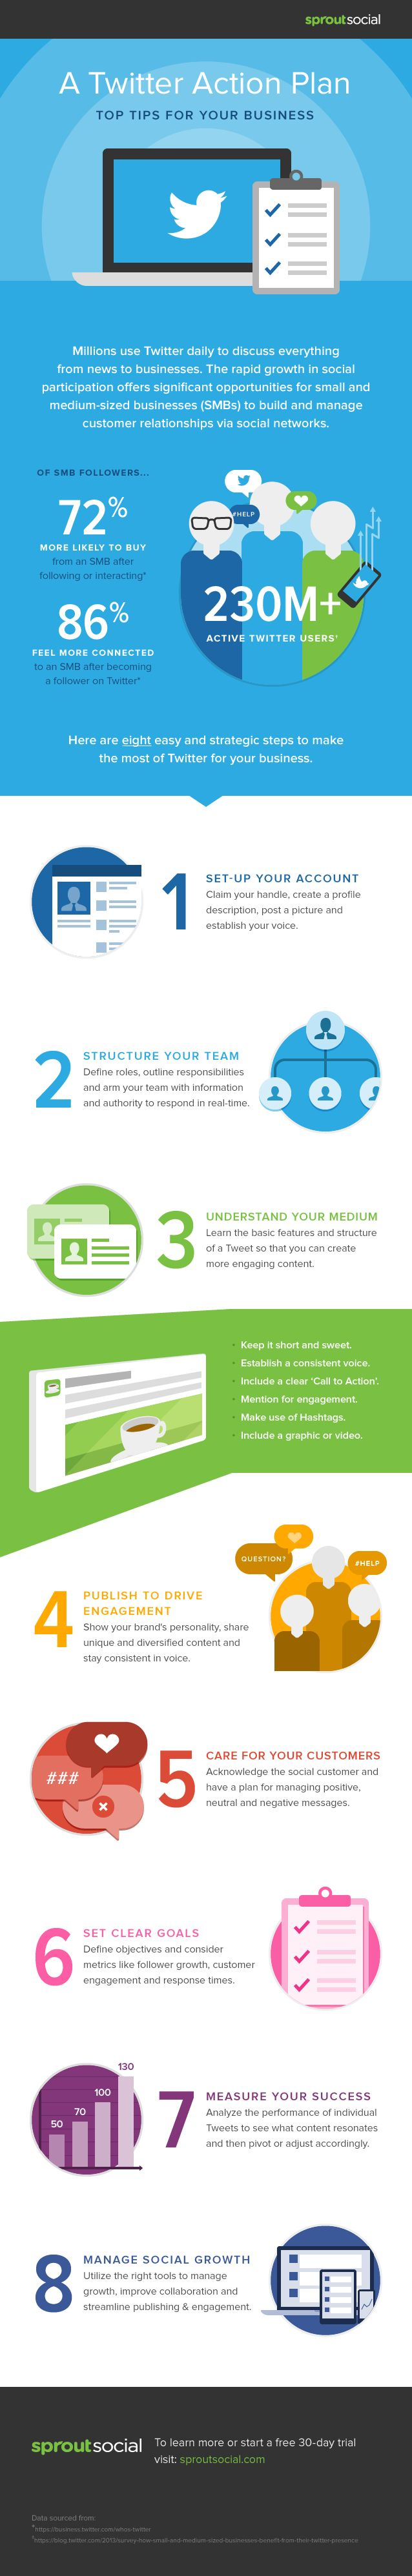 A #Twitter Action Plan: Top Tips for Your Business - #SocialMedia #infographic